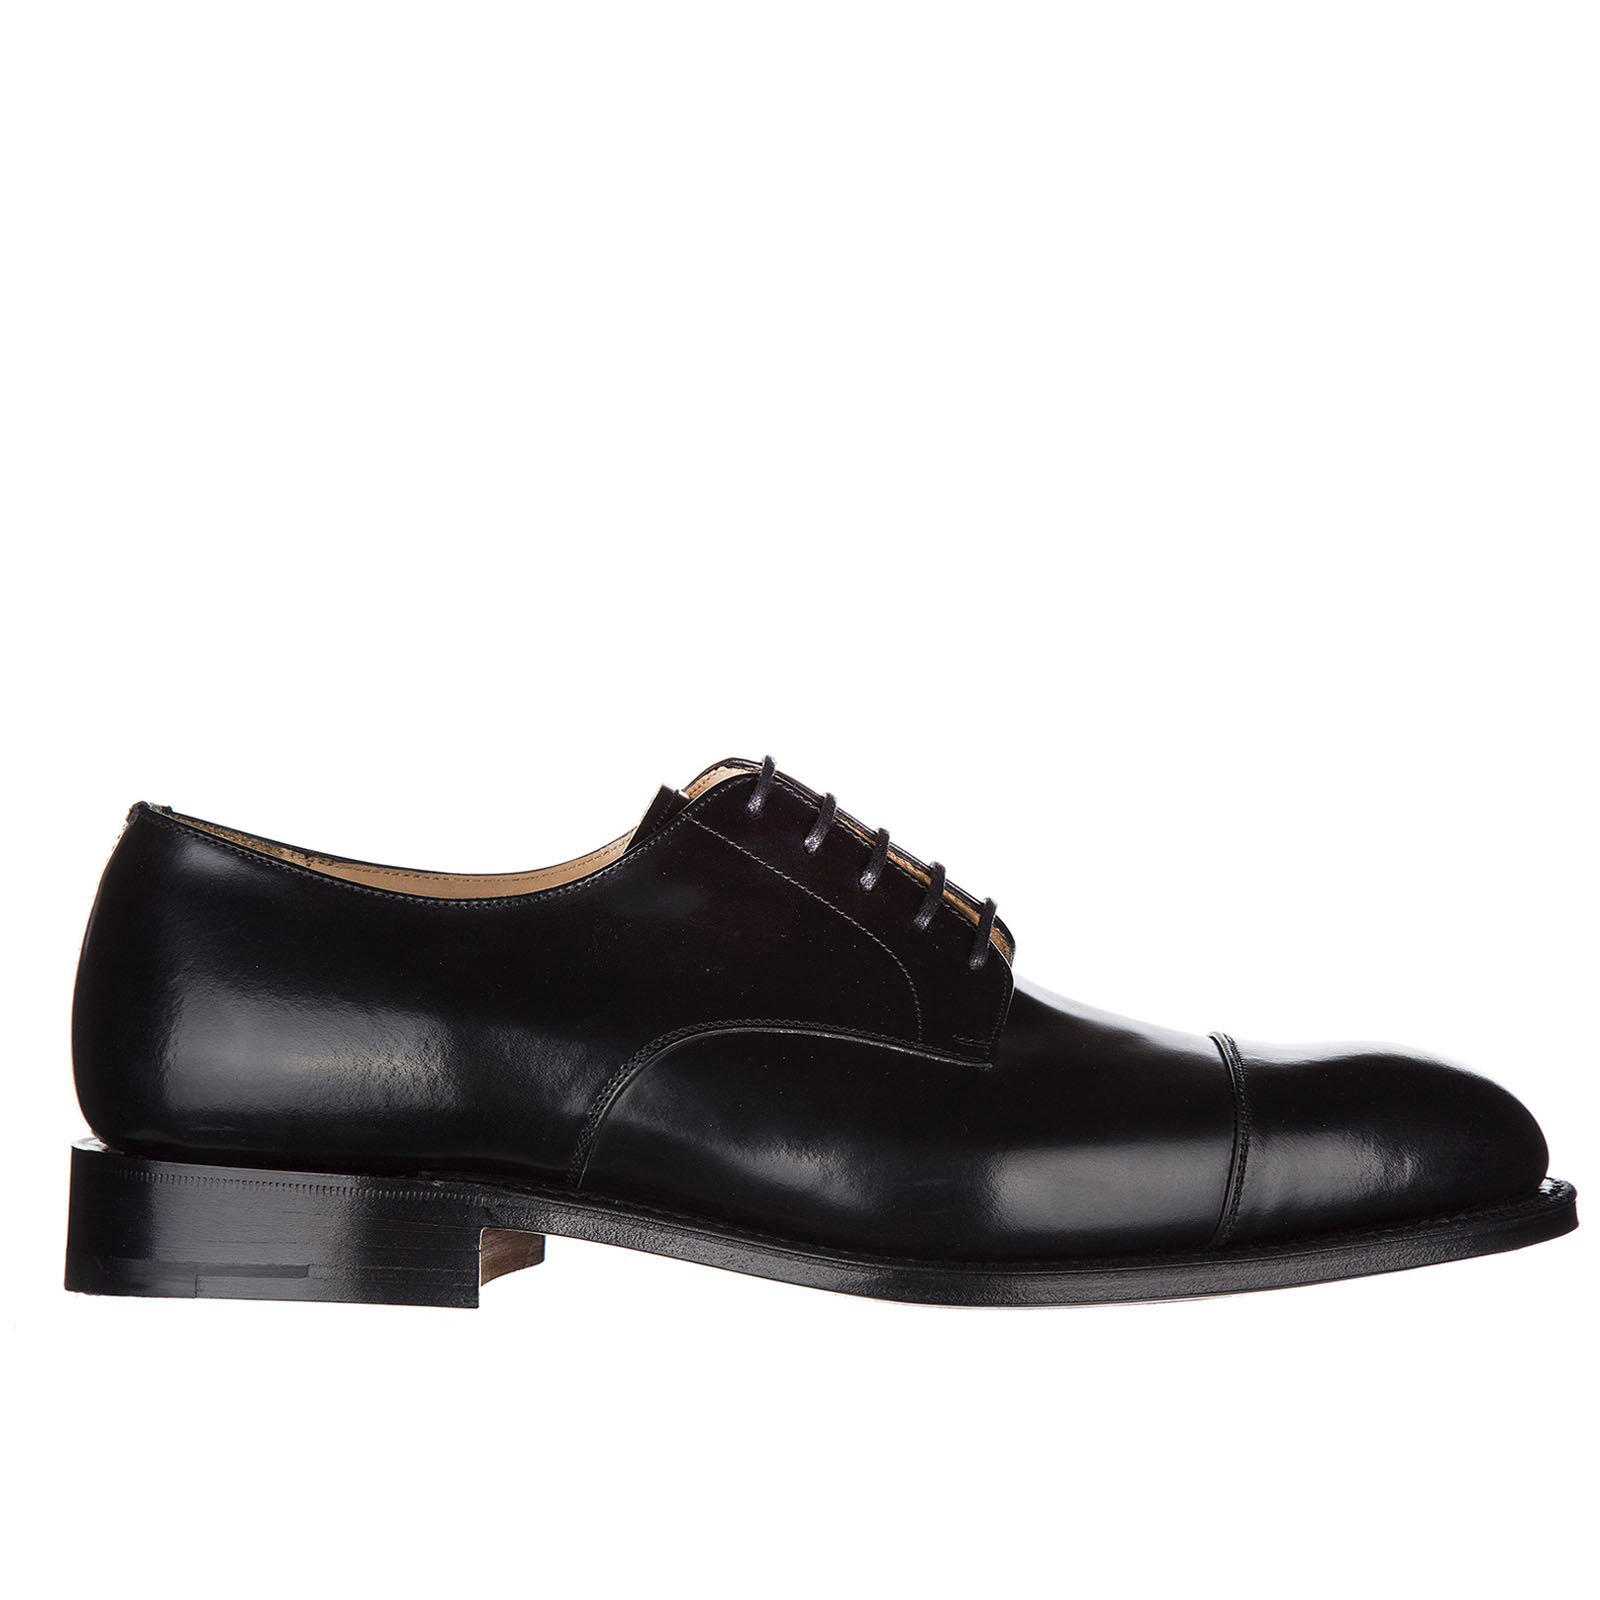 Men's classic leather lace up laced formal shoes cartmel 173 derby